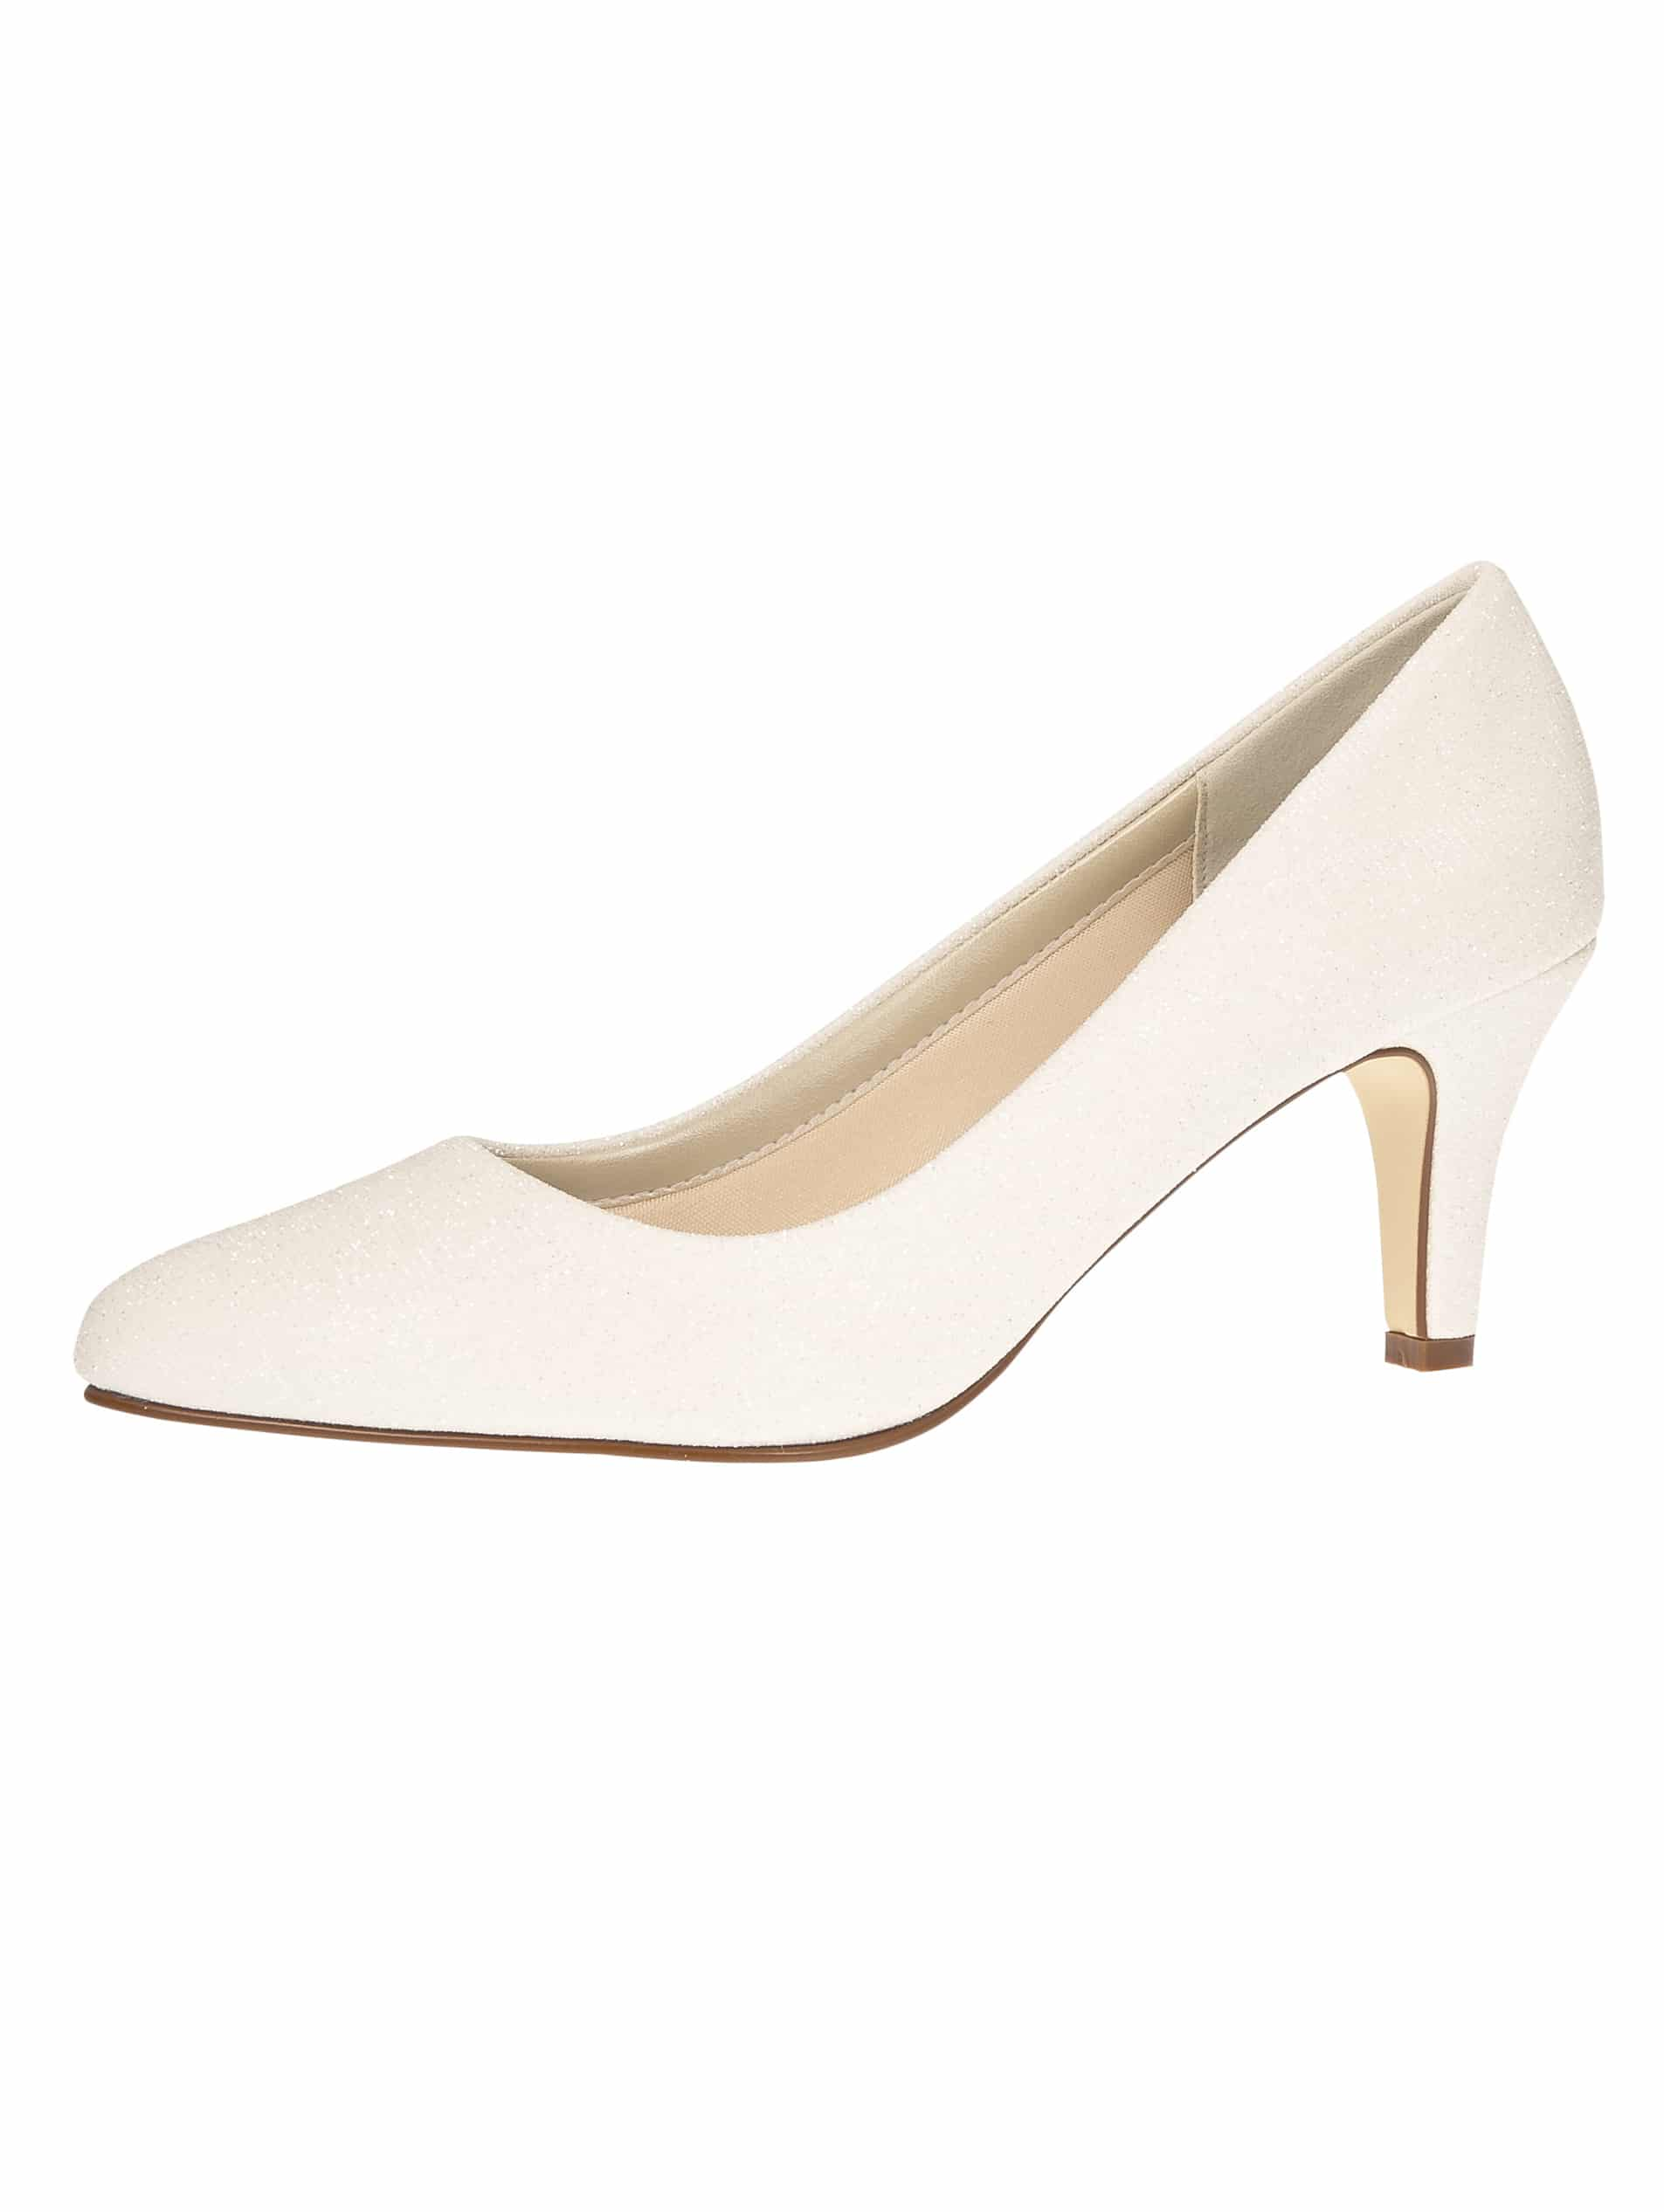 Bruidsschoen Brooke Off White Metallic - In White Shop